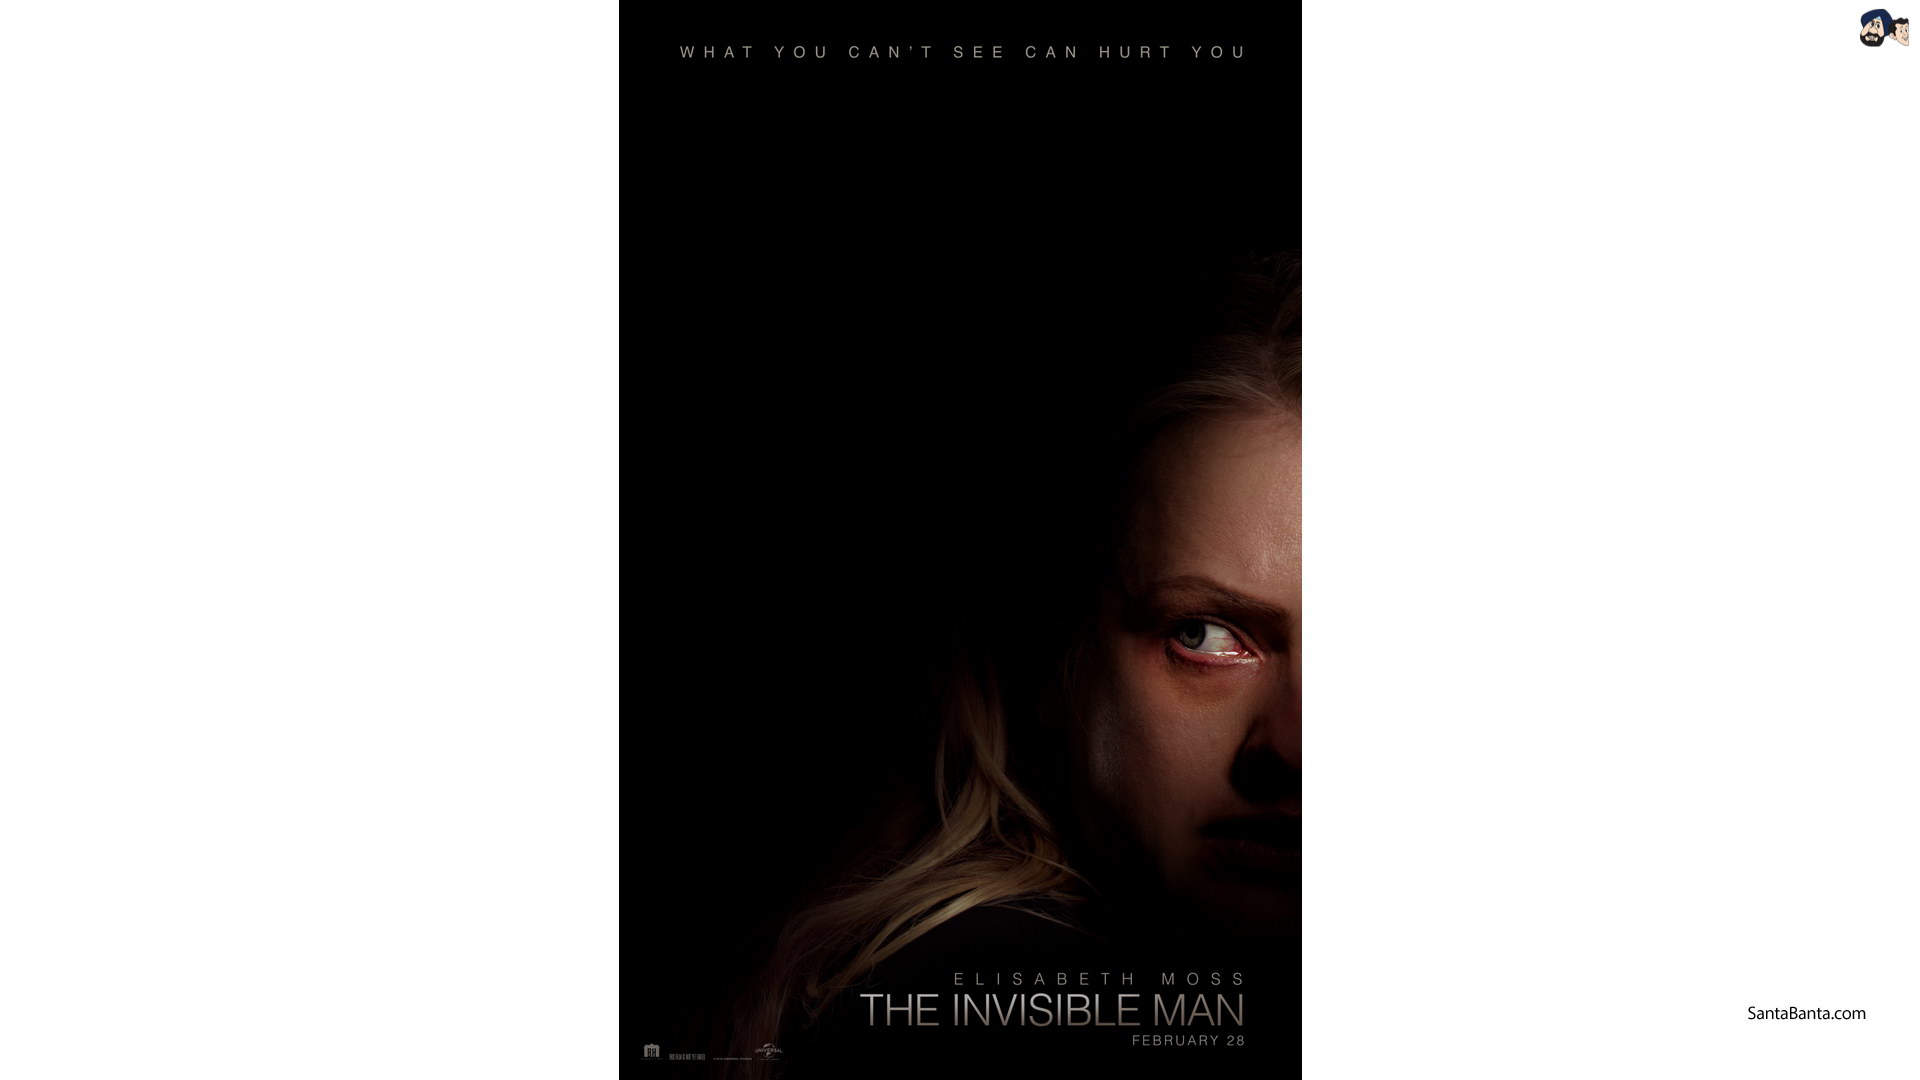 Elizabeth Moss on the poster of horror movie The Invisible Man 1920x1080